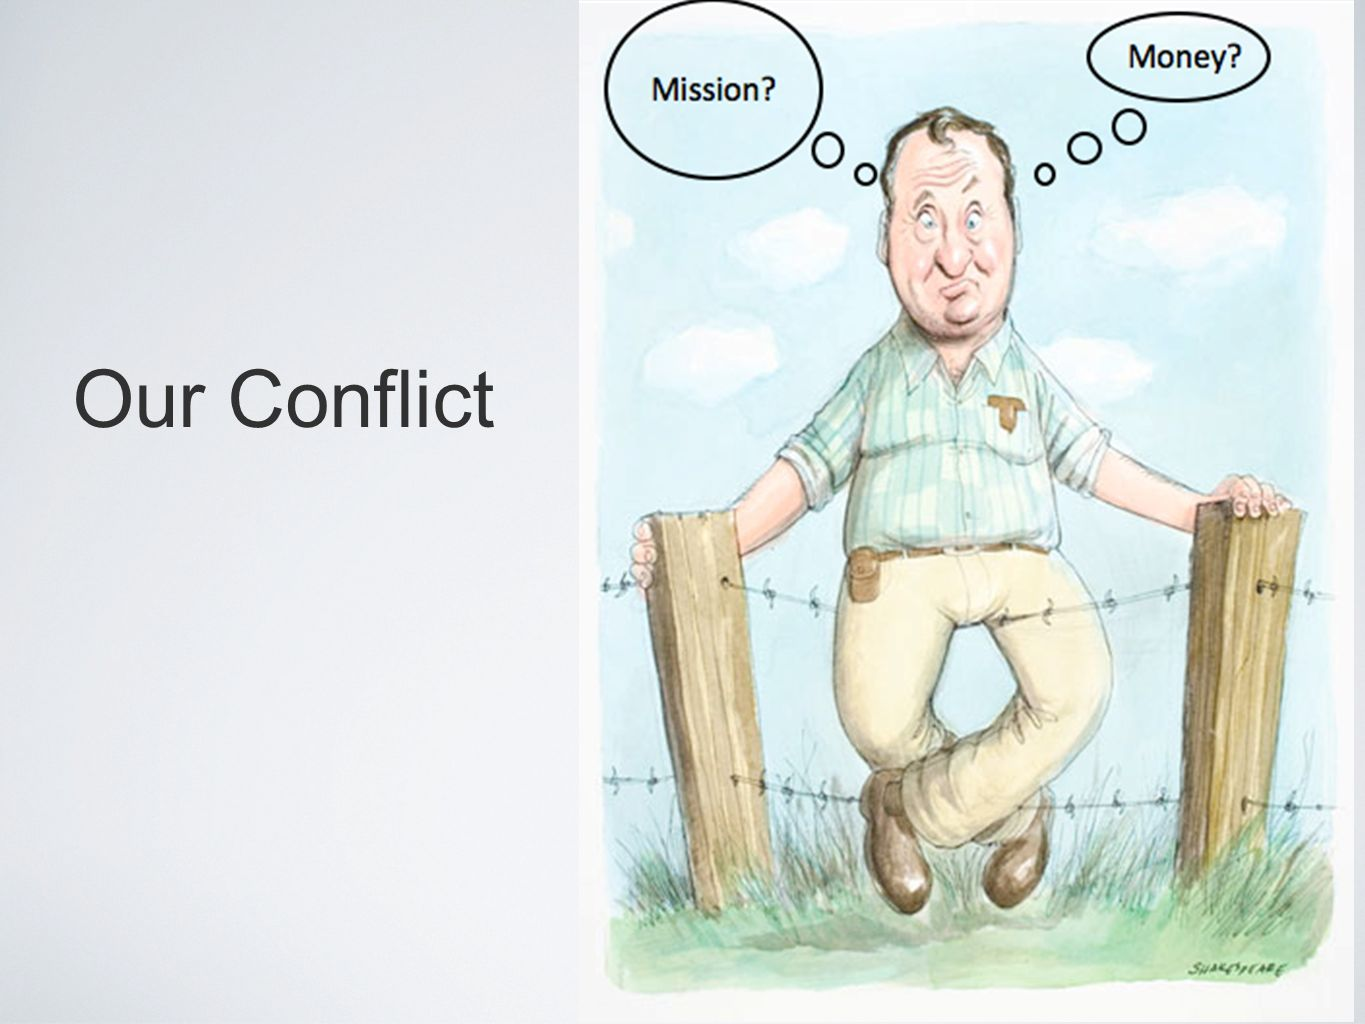 Our Conflict